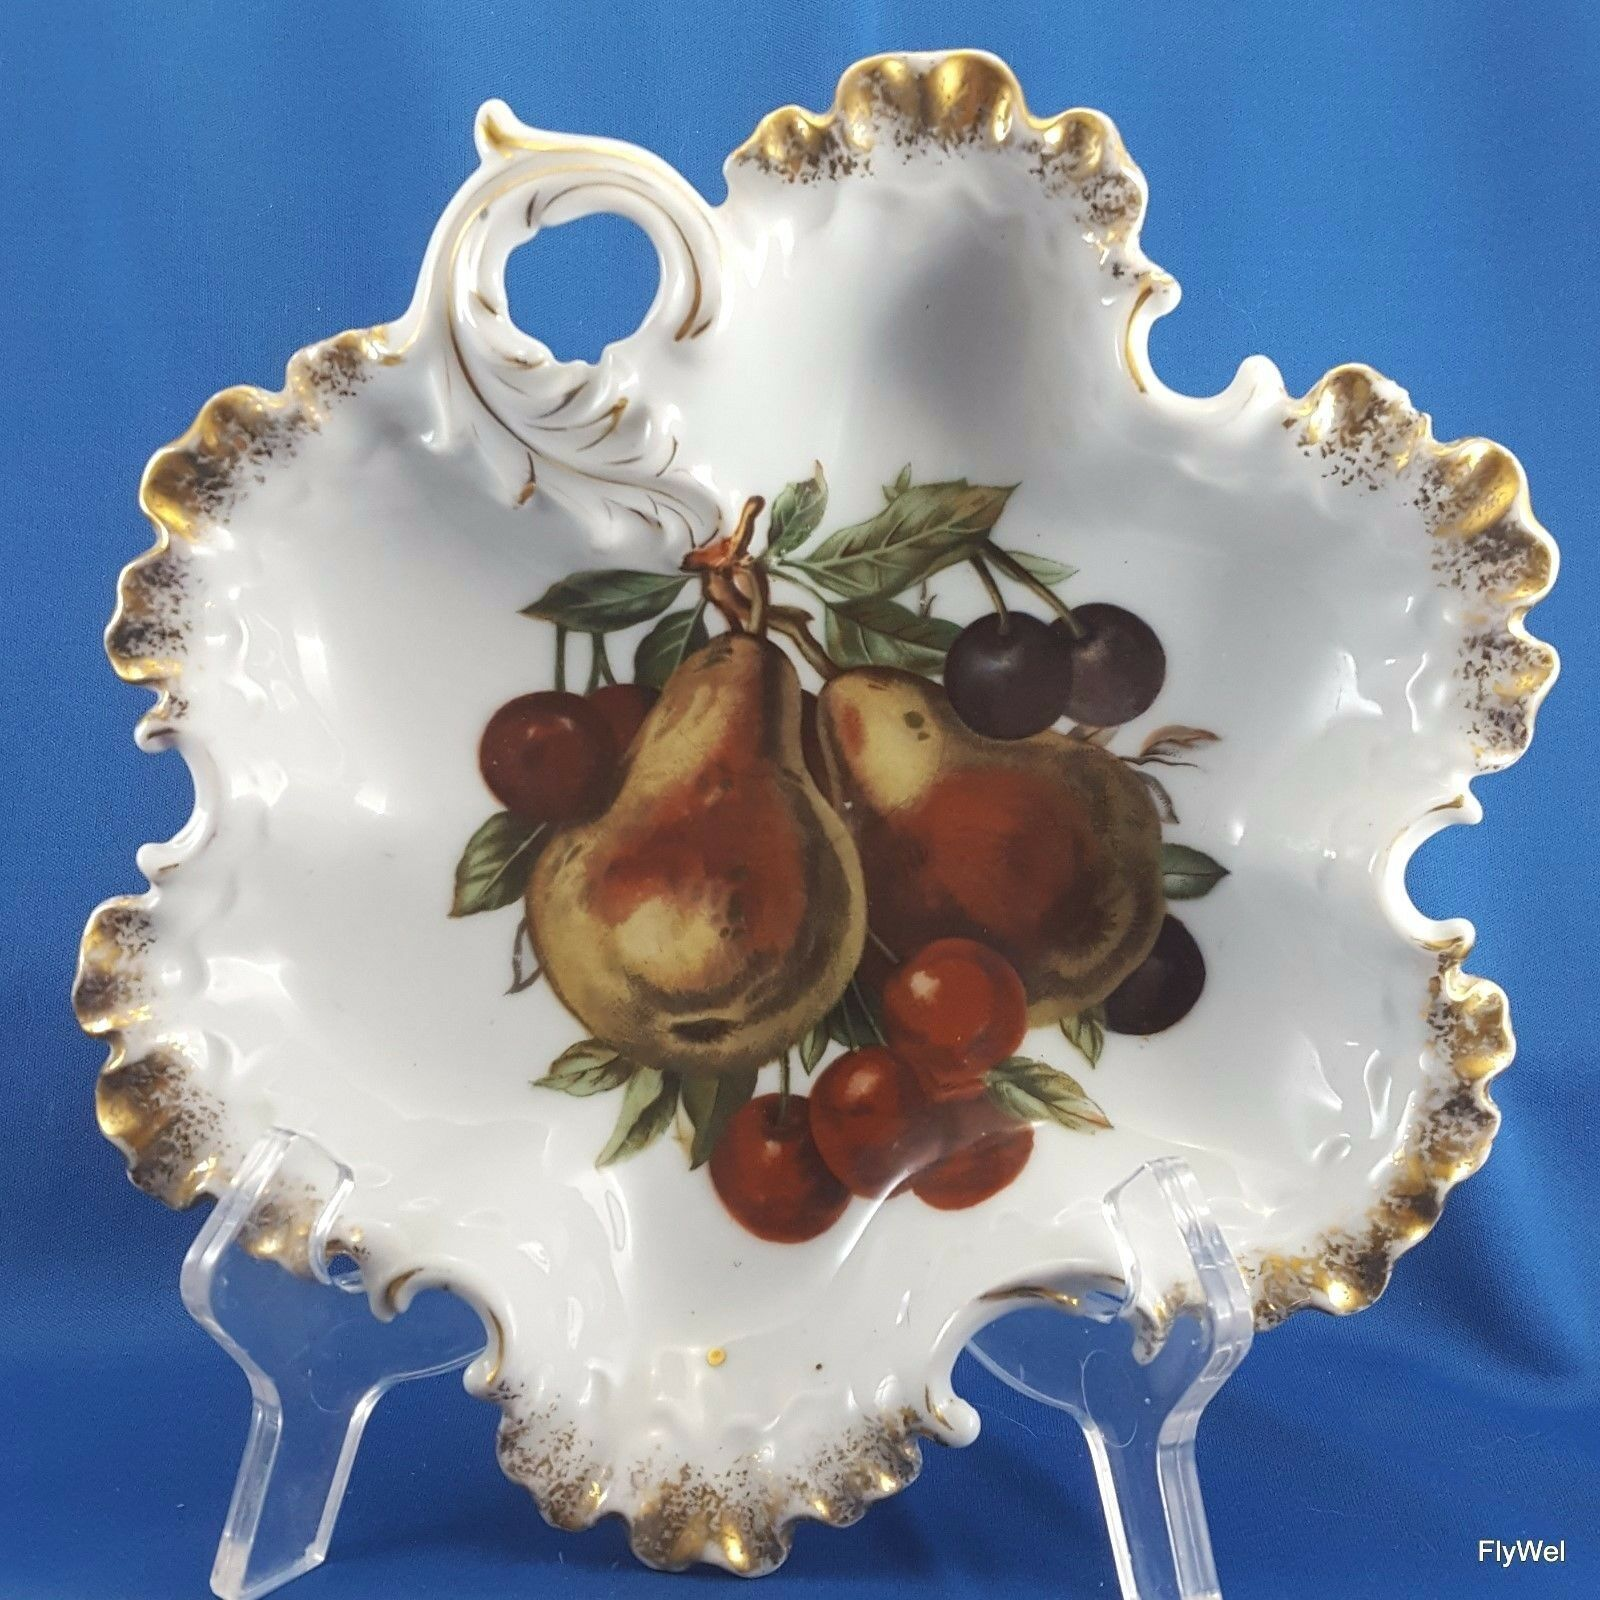 Primary image for Rosenthal Monbijou Leaf Shaped Bowl with Mitterteich Orchard Decoration 8.5""